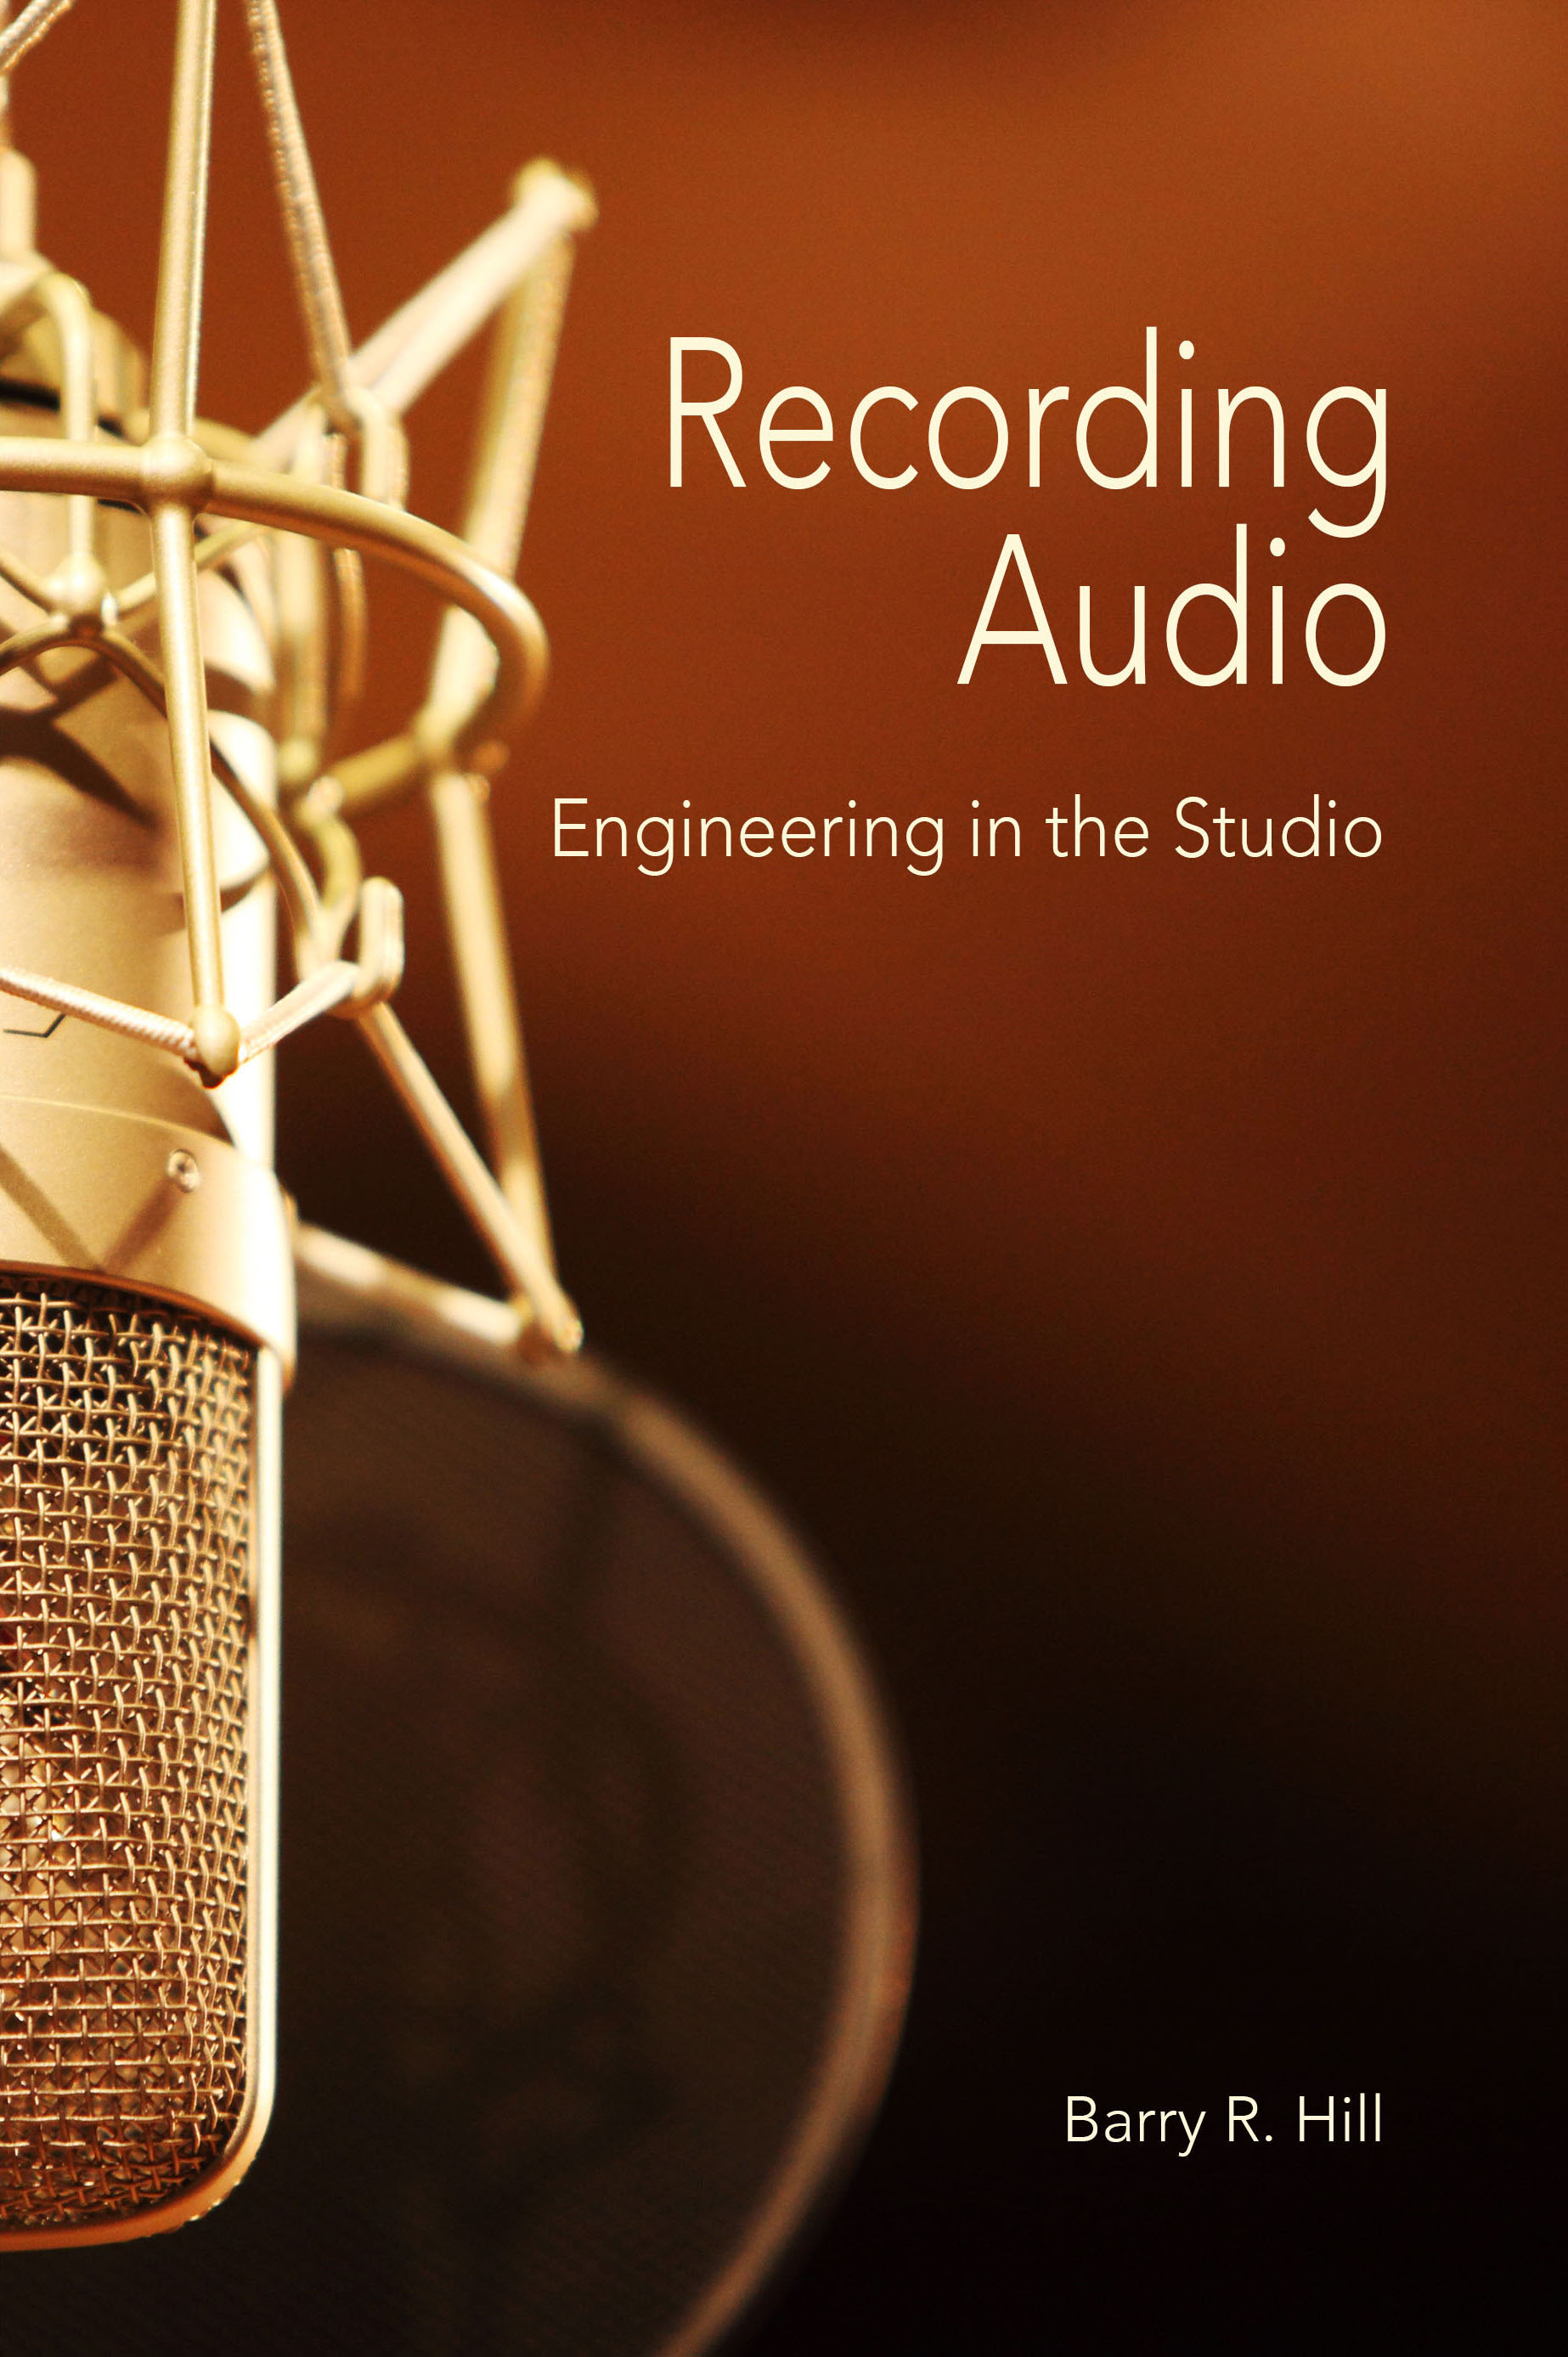 Recording Audio - Most audio recording books are either too complicated for new engineers or too dumbed down (sometimes even inaccurate). So I wrote my own book designed specifically for students who want to learn solid fundamentals as they develop their engineering skills and knowledge.